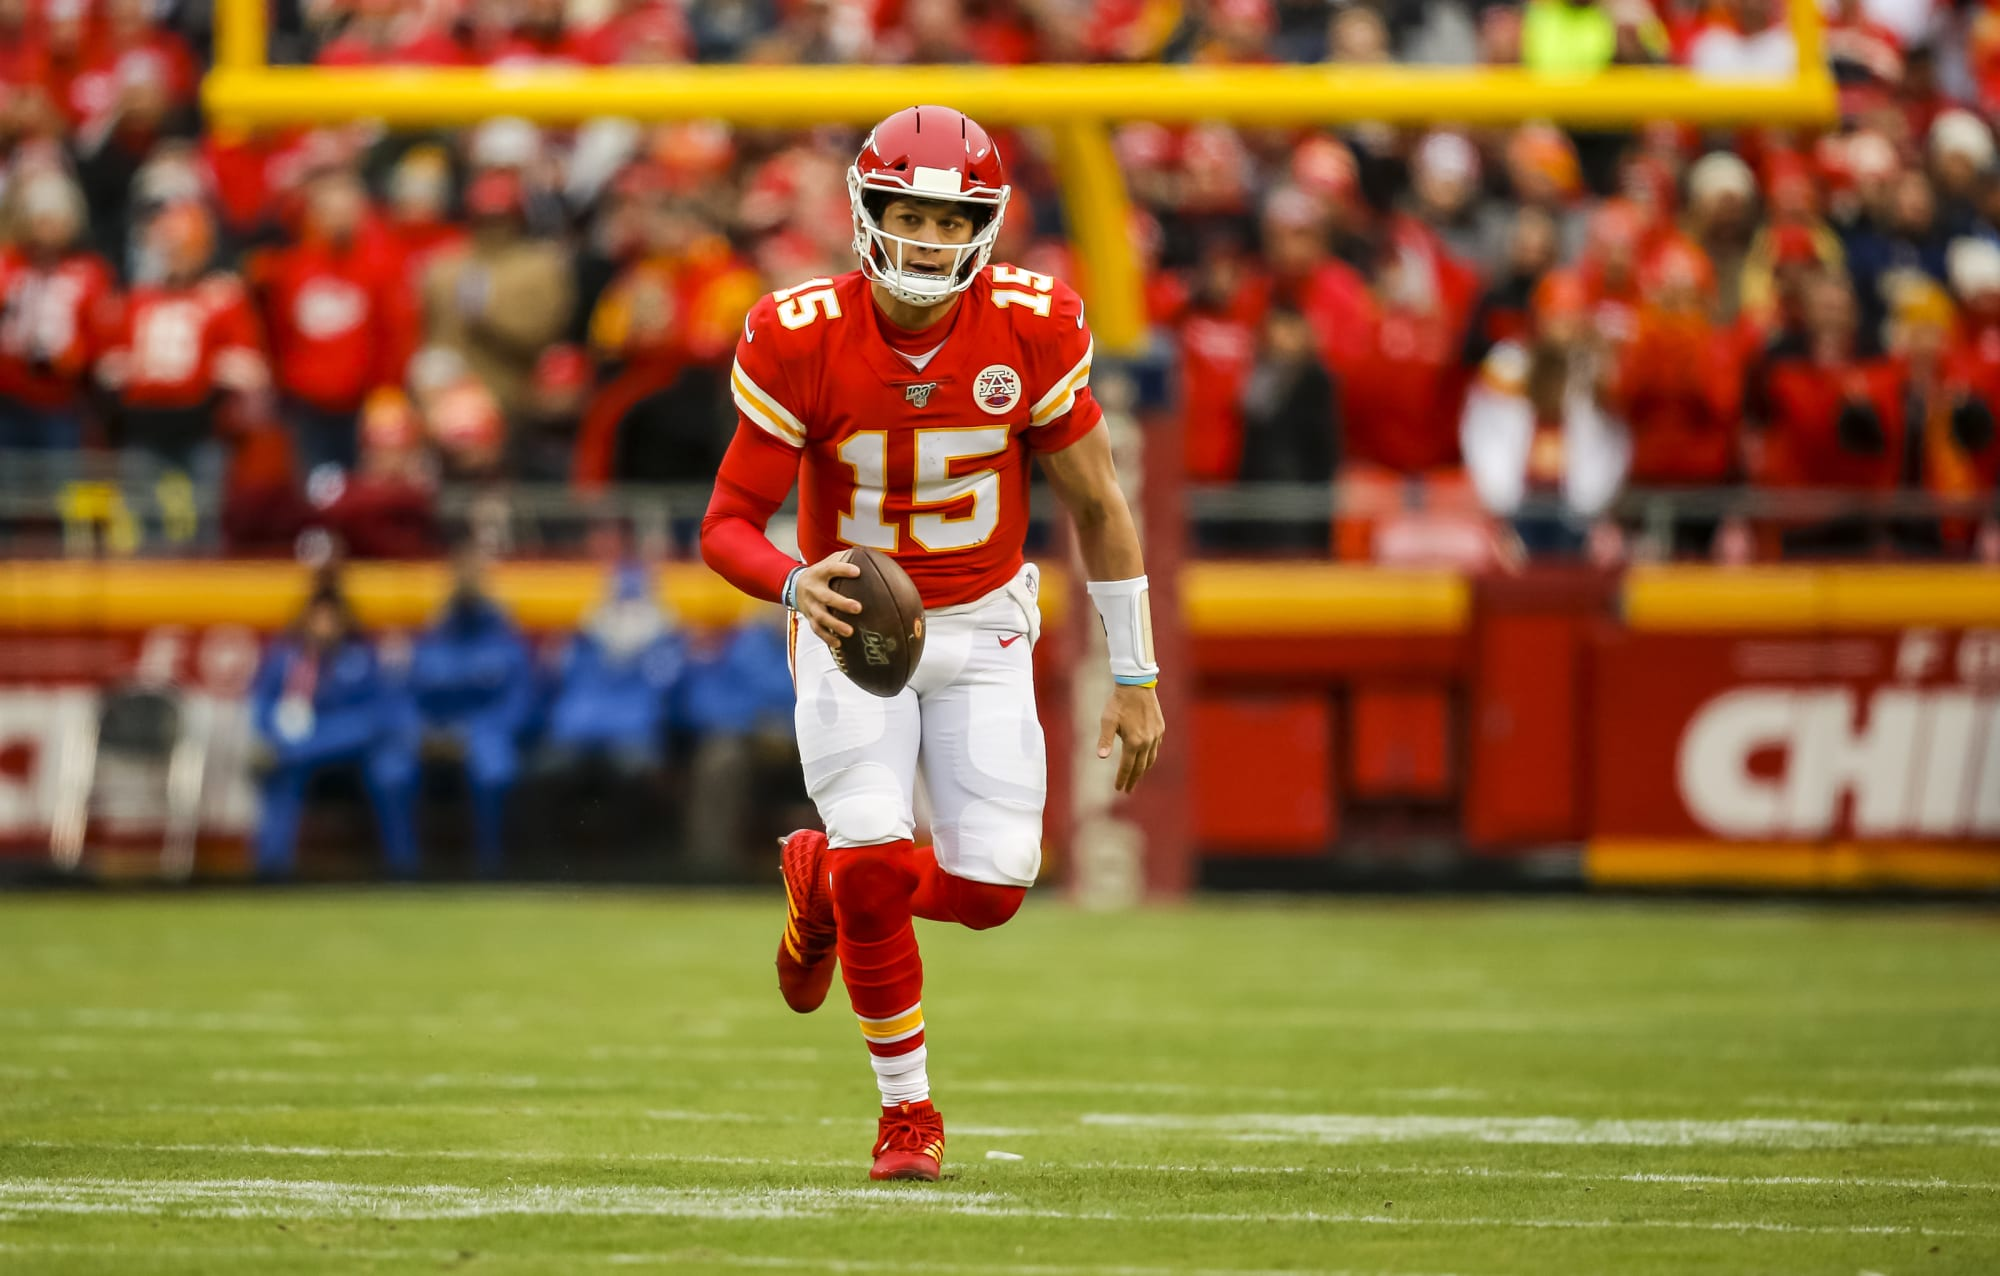 Raiders At Chiefs Week 5 Game Preview And Prediction